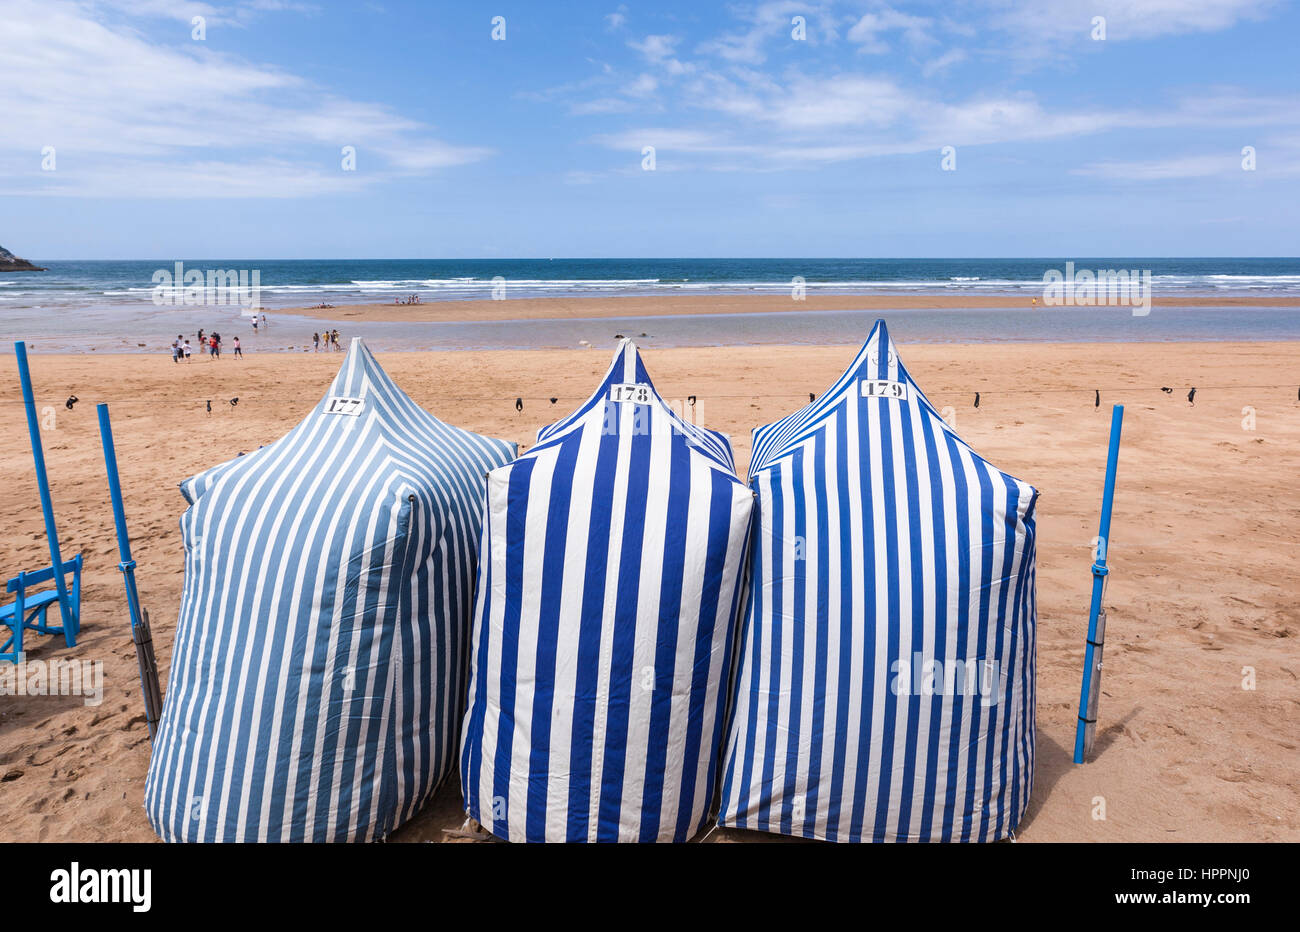 Awnings Stockfotos Awnings Bilder Alamy